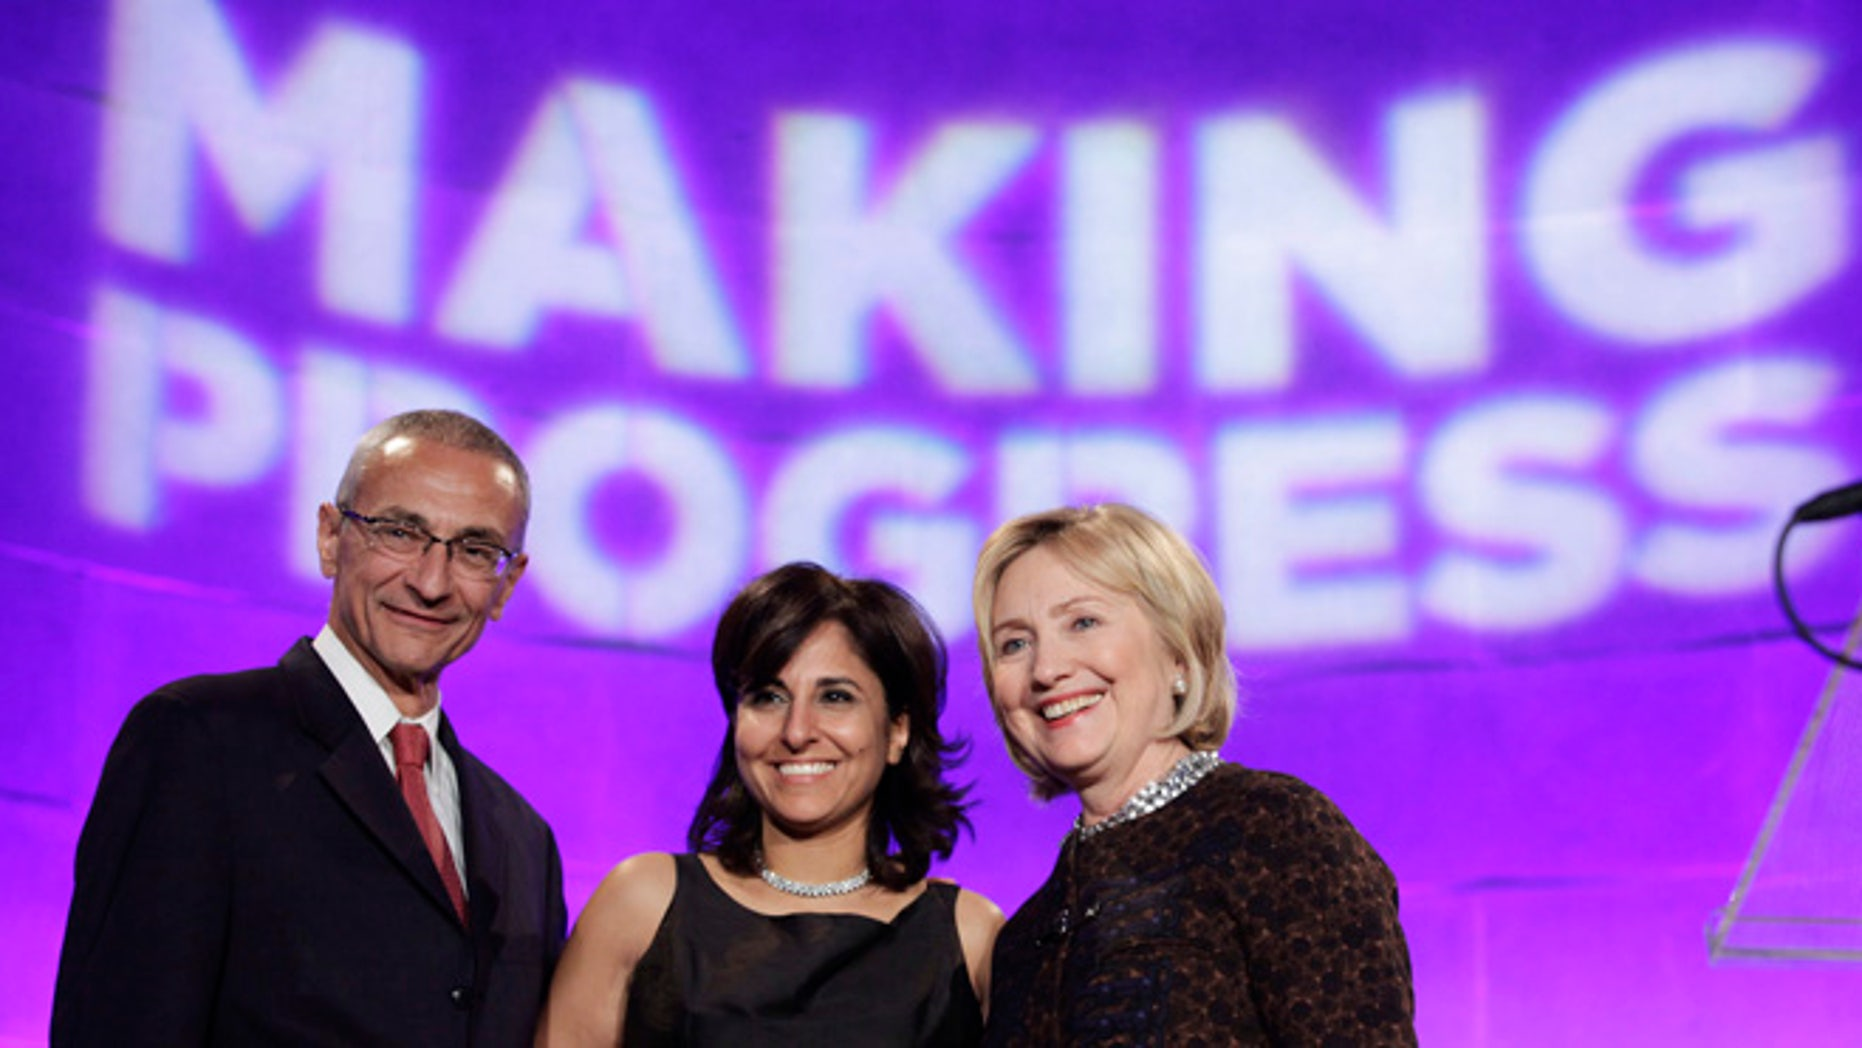 FILE: October 24, 2013: Hillary Clinton (r) with President of the Center for American Progress Neera Tanden and CAP founder John Podesta, Washington, D.C. REUTERS